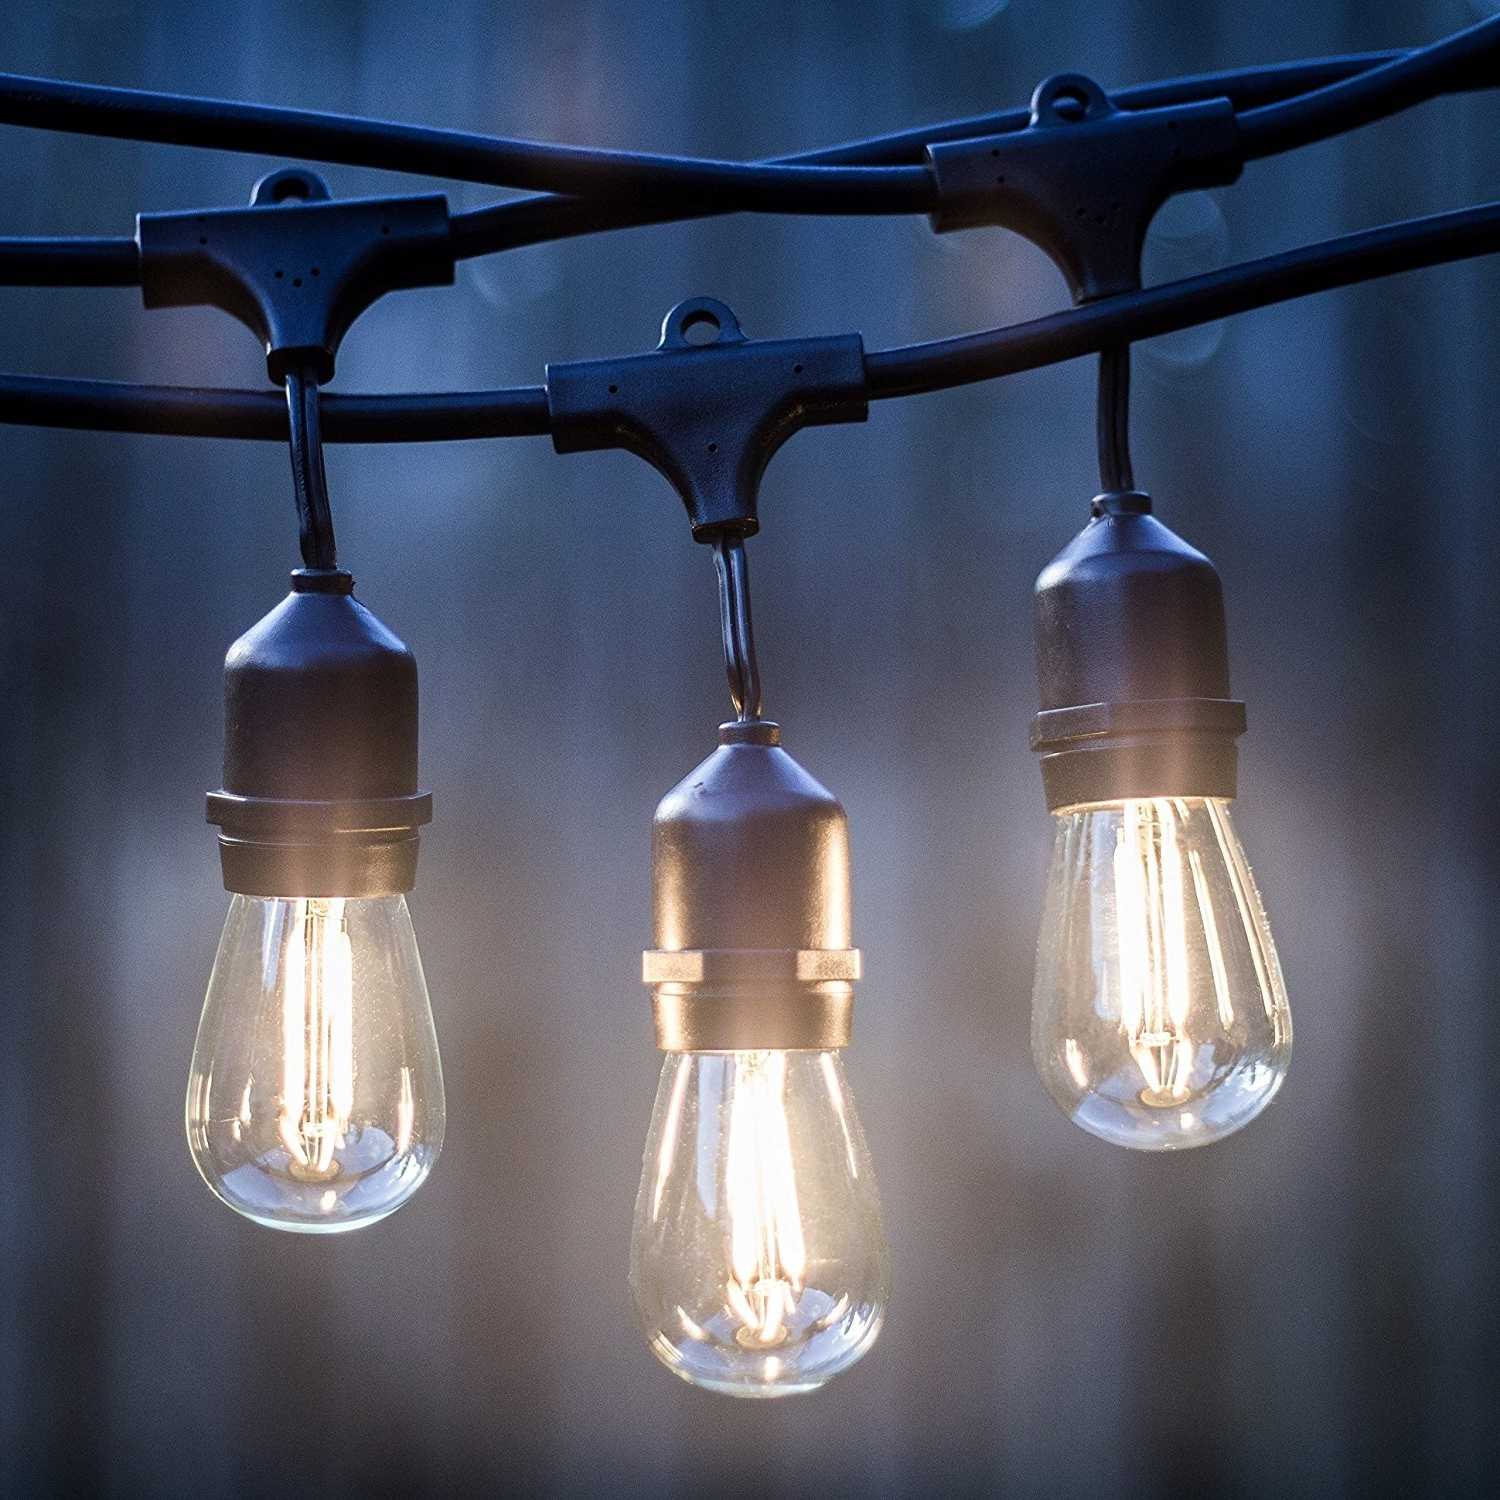 Diy : Led Outdoor String Lights Listed Hanging Sockets Watt With 2019 Outdoor Hanging Lights At Bunnings (View 4 of 20)